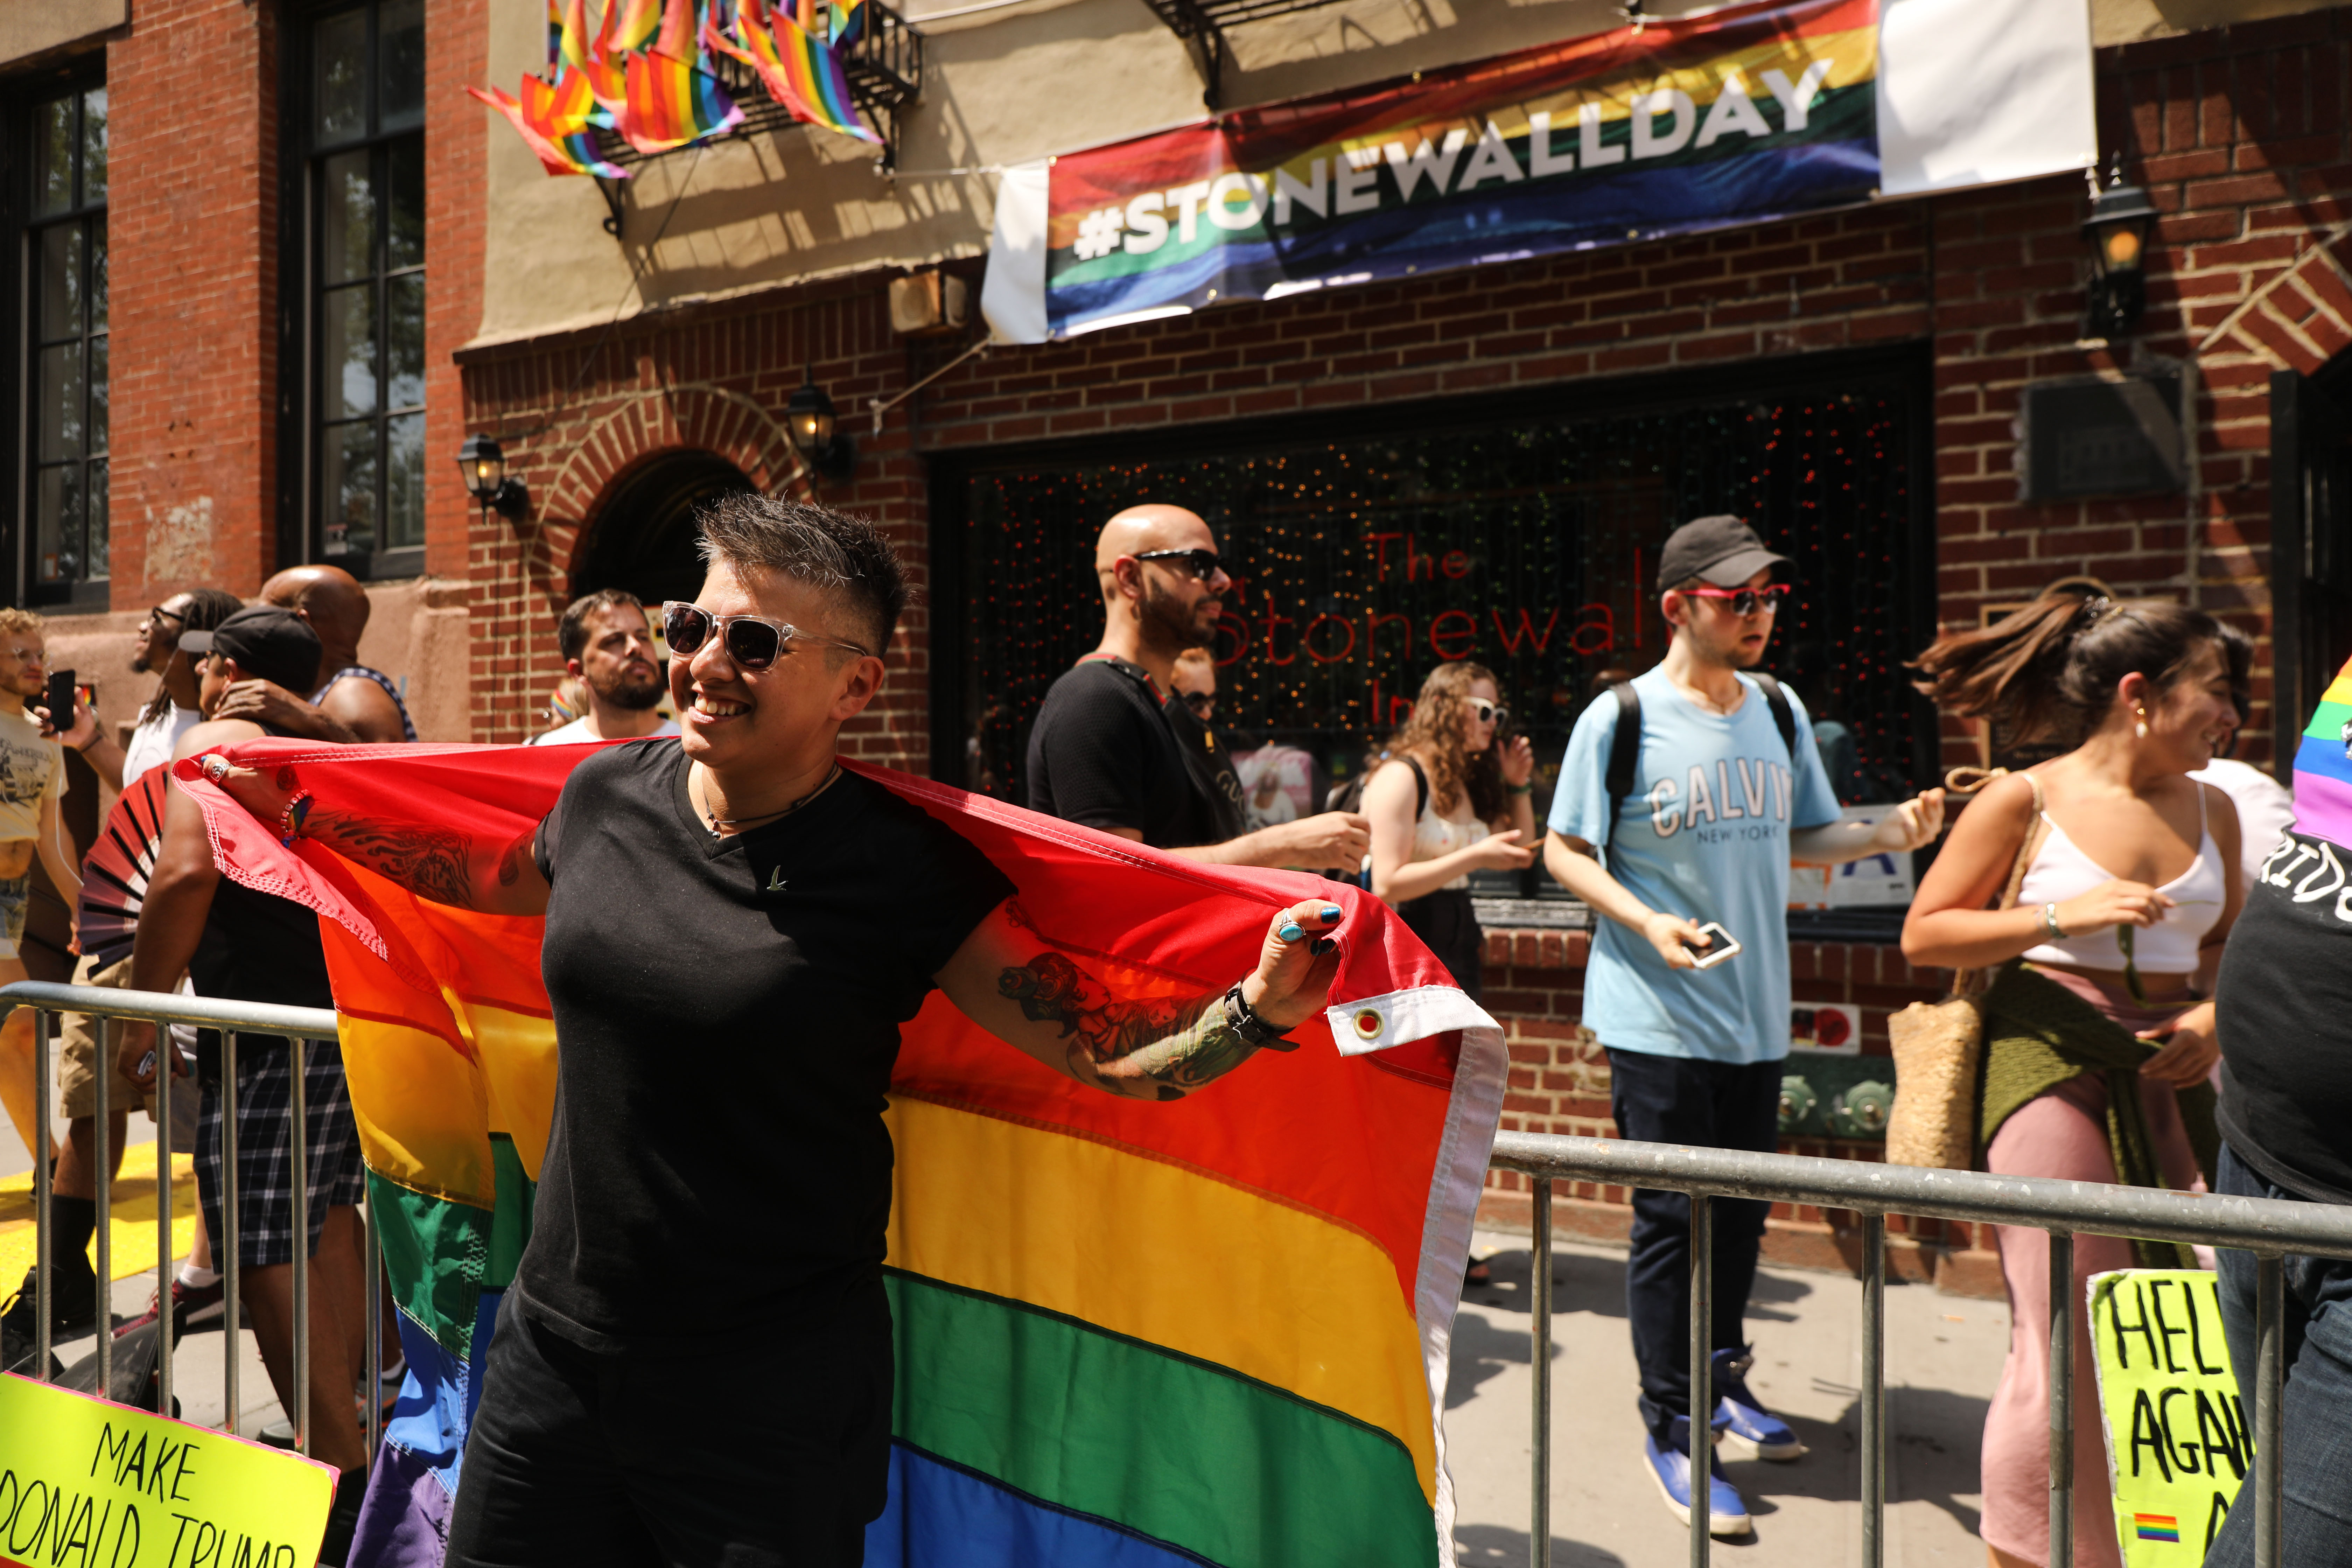 Activists and politicians spoke at the rally held outside the Stonewall Inn.